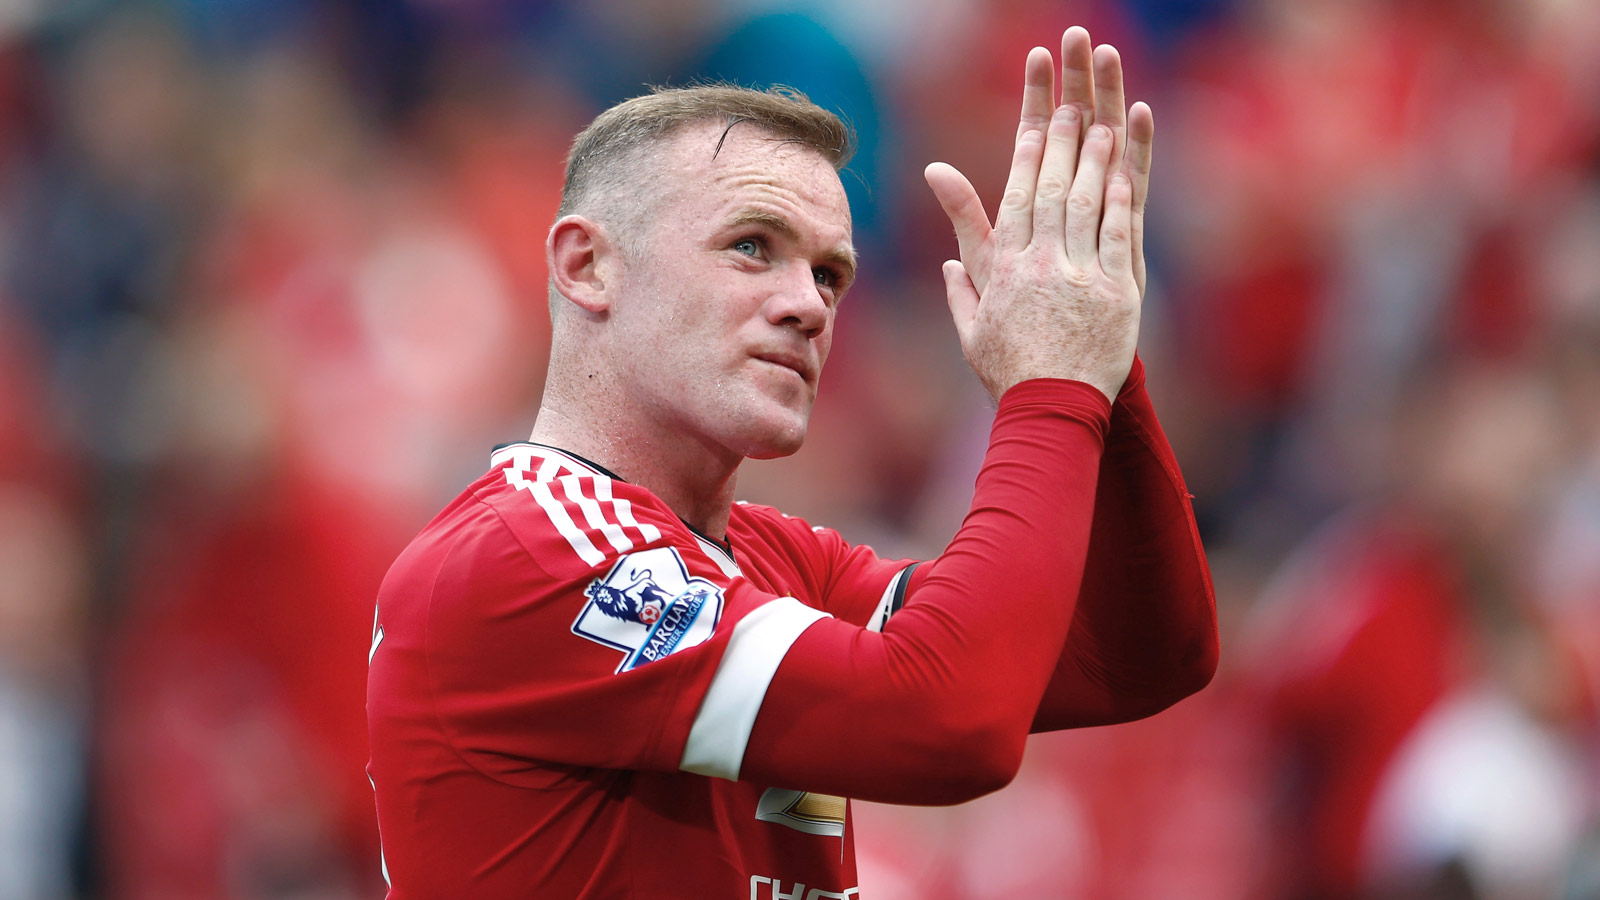 LvG insists United don't need another striker, happy with Rooney